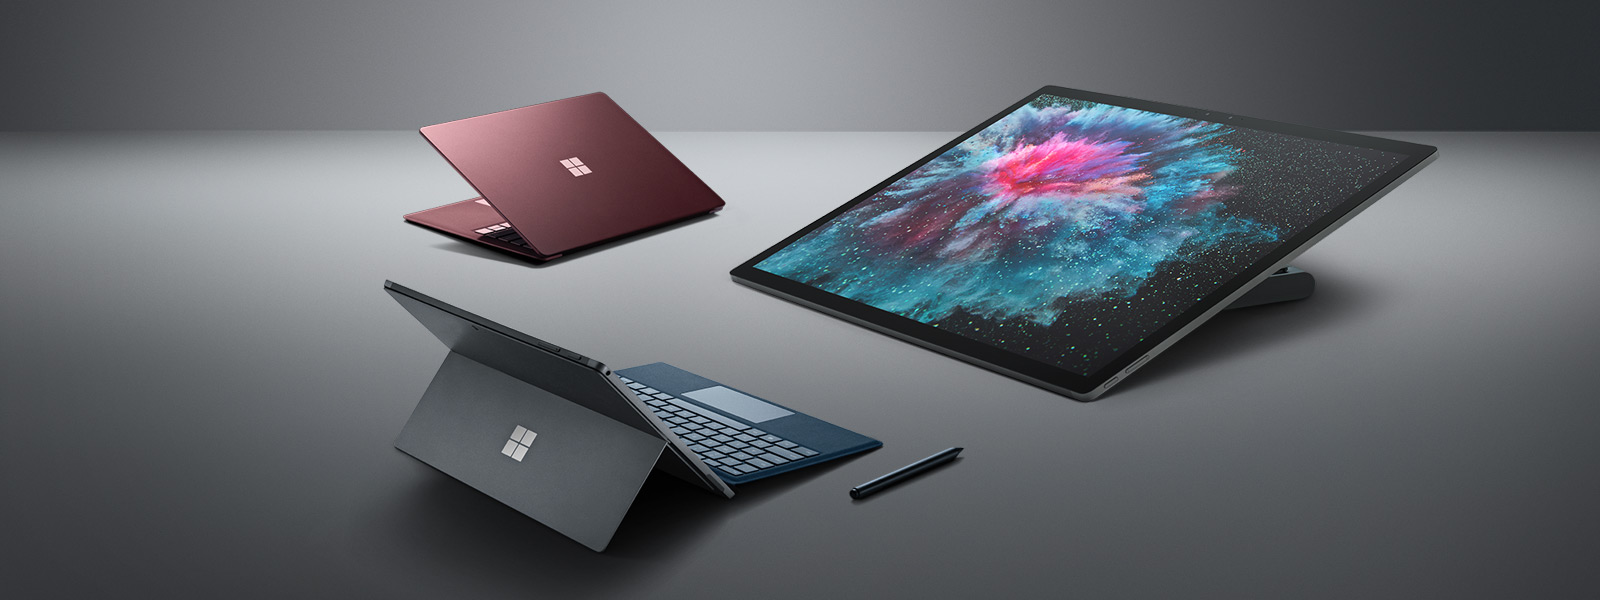 Surface Laptop 2, Surface Pro 6, Surface Studio 2